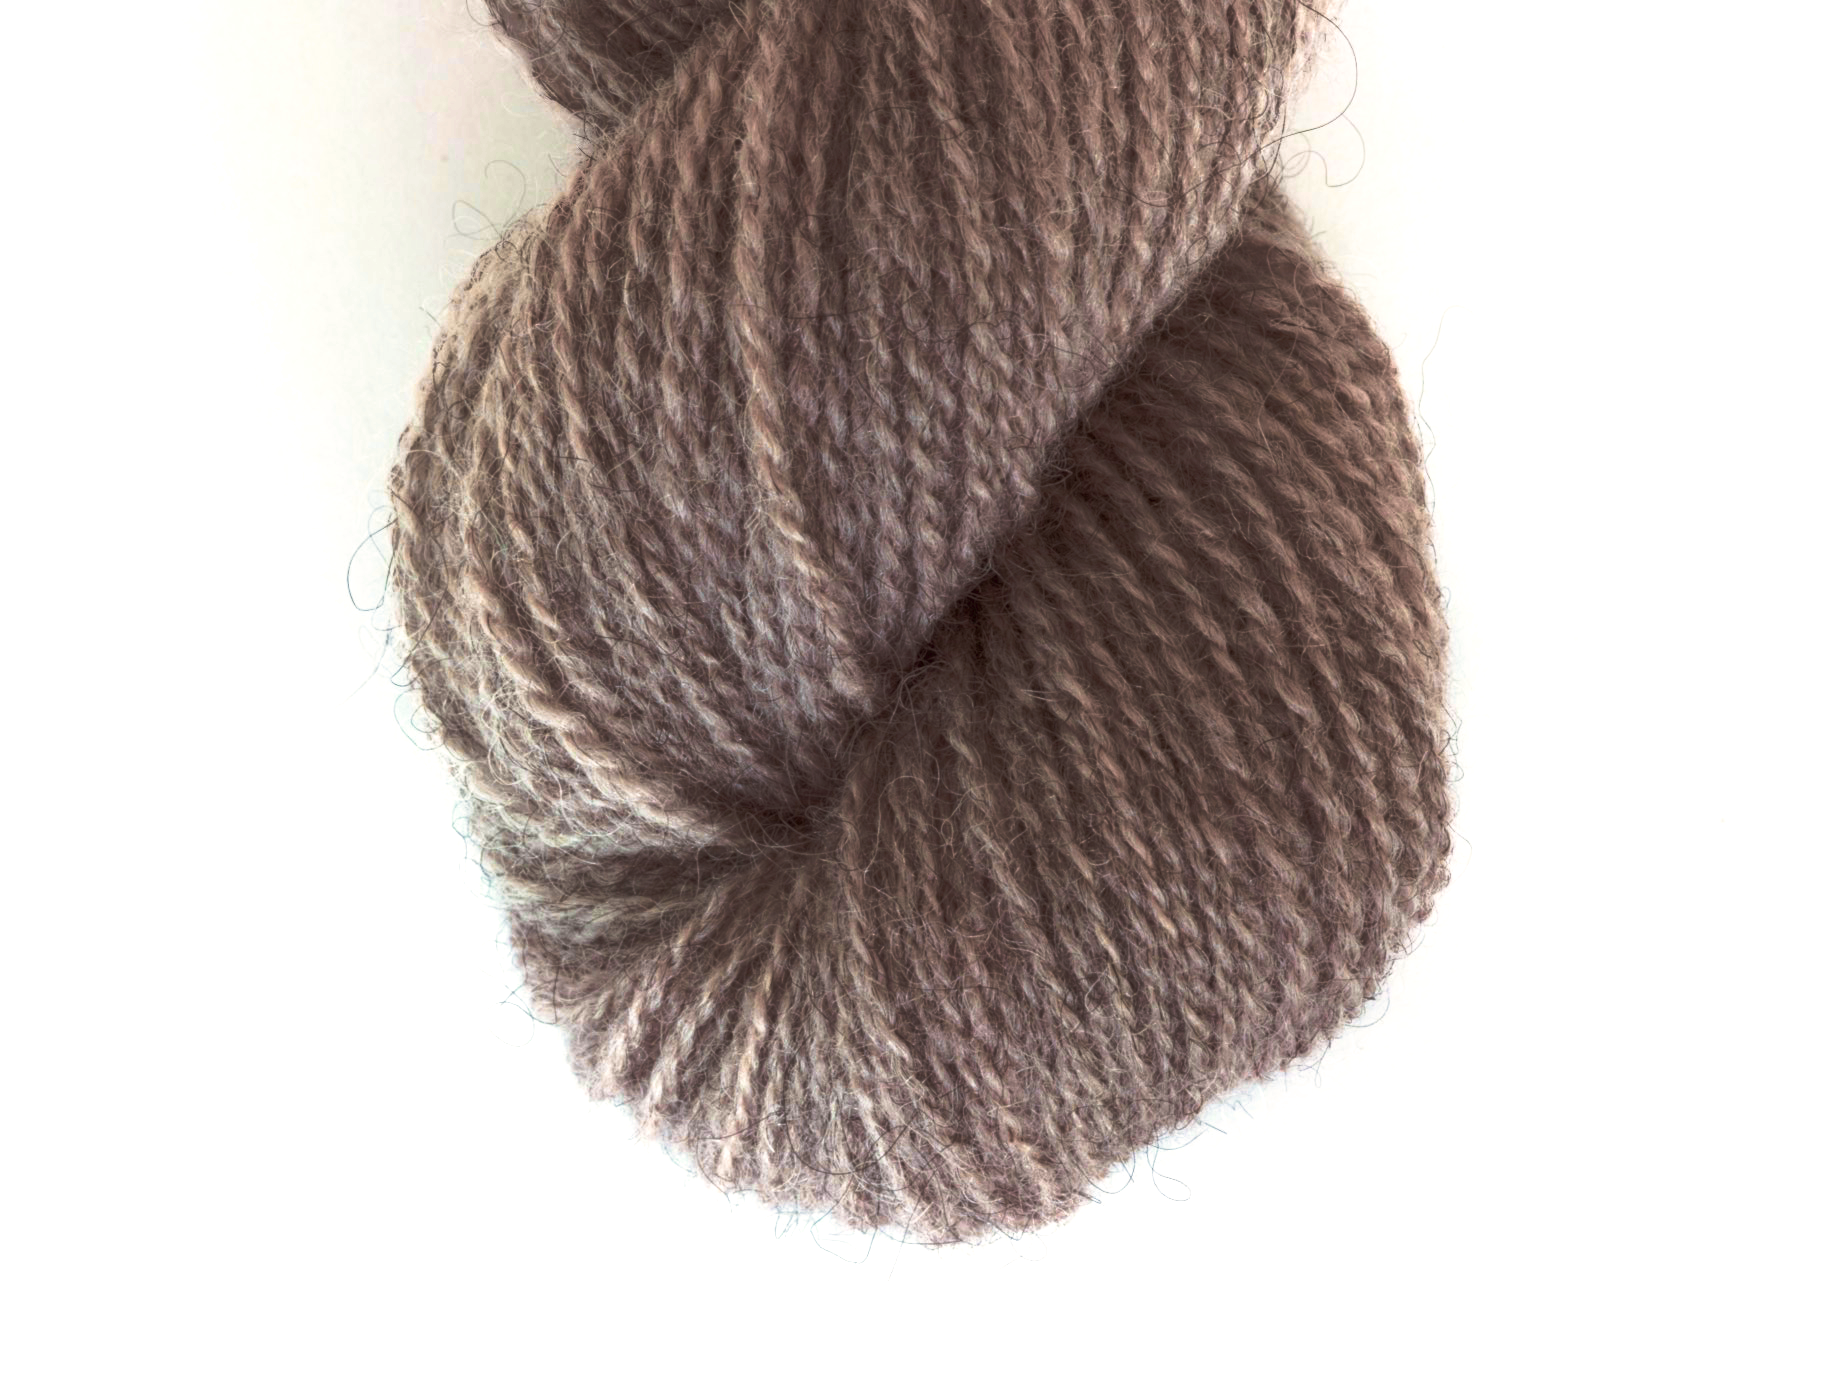 Patterncolor yarn for the Woven One 450m/100g wool